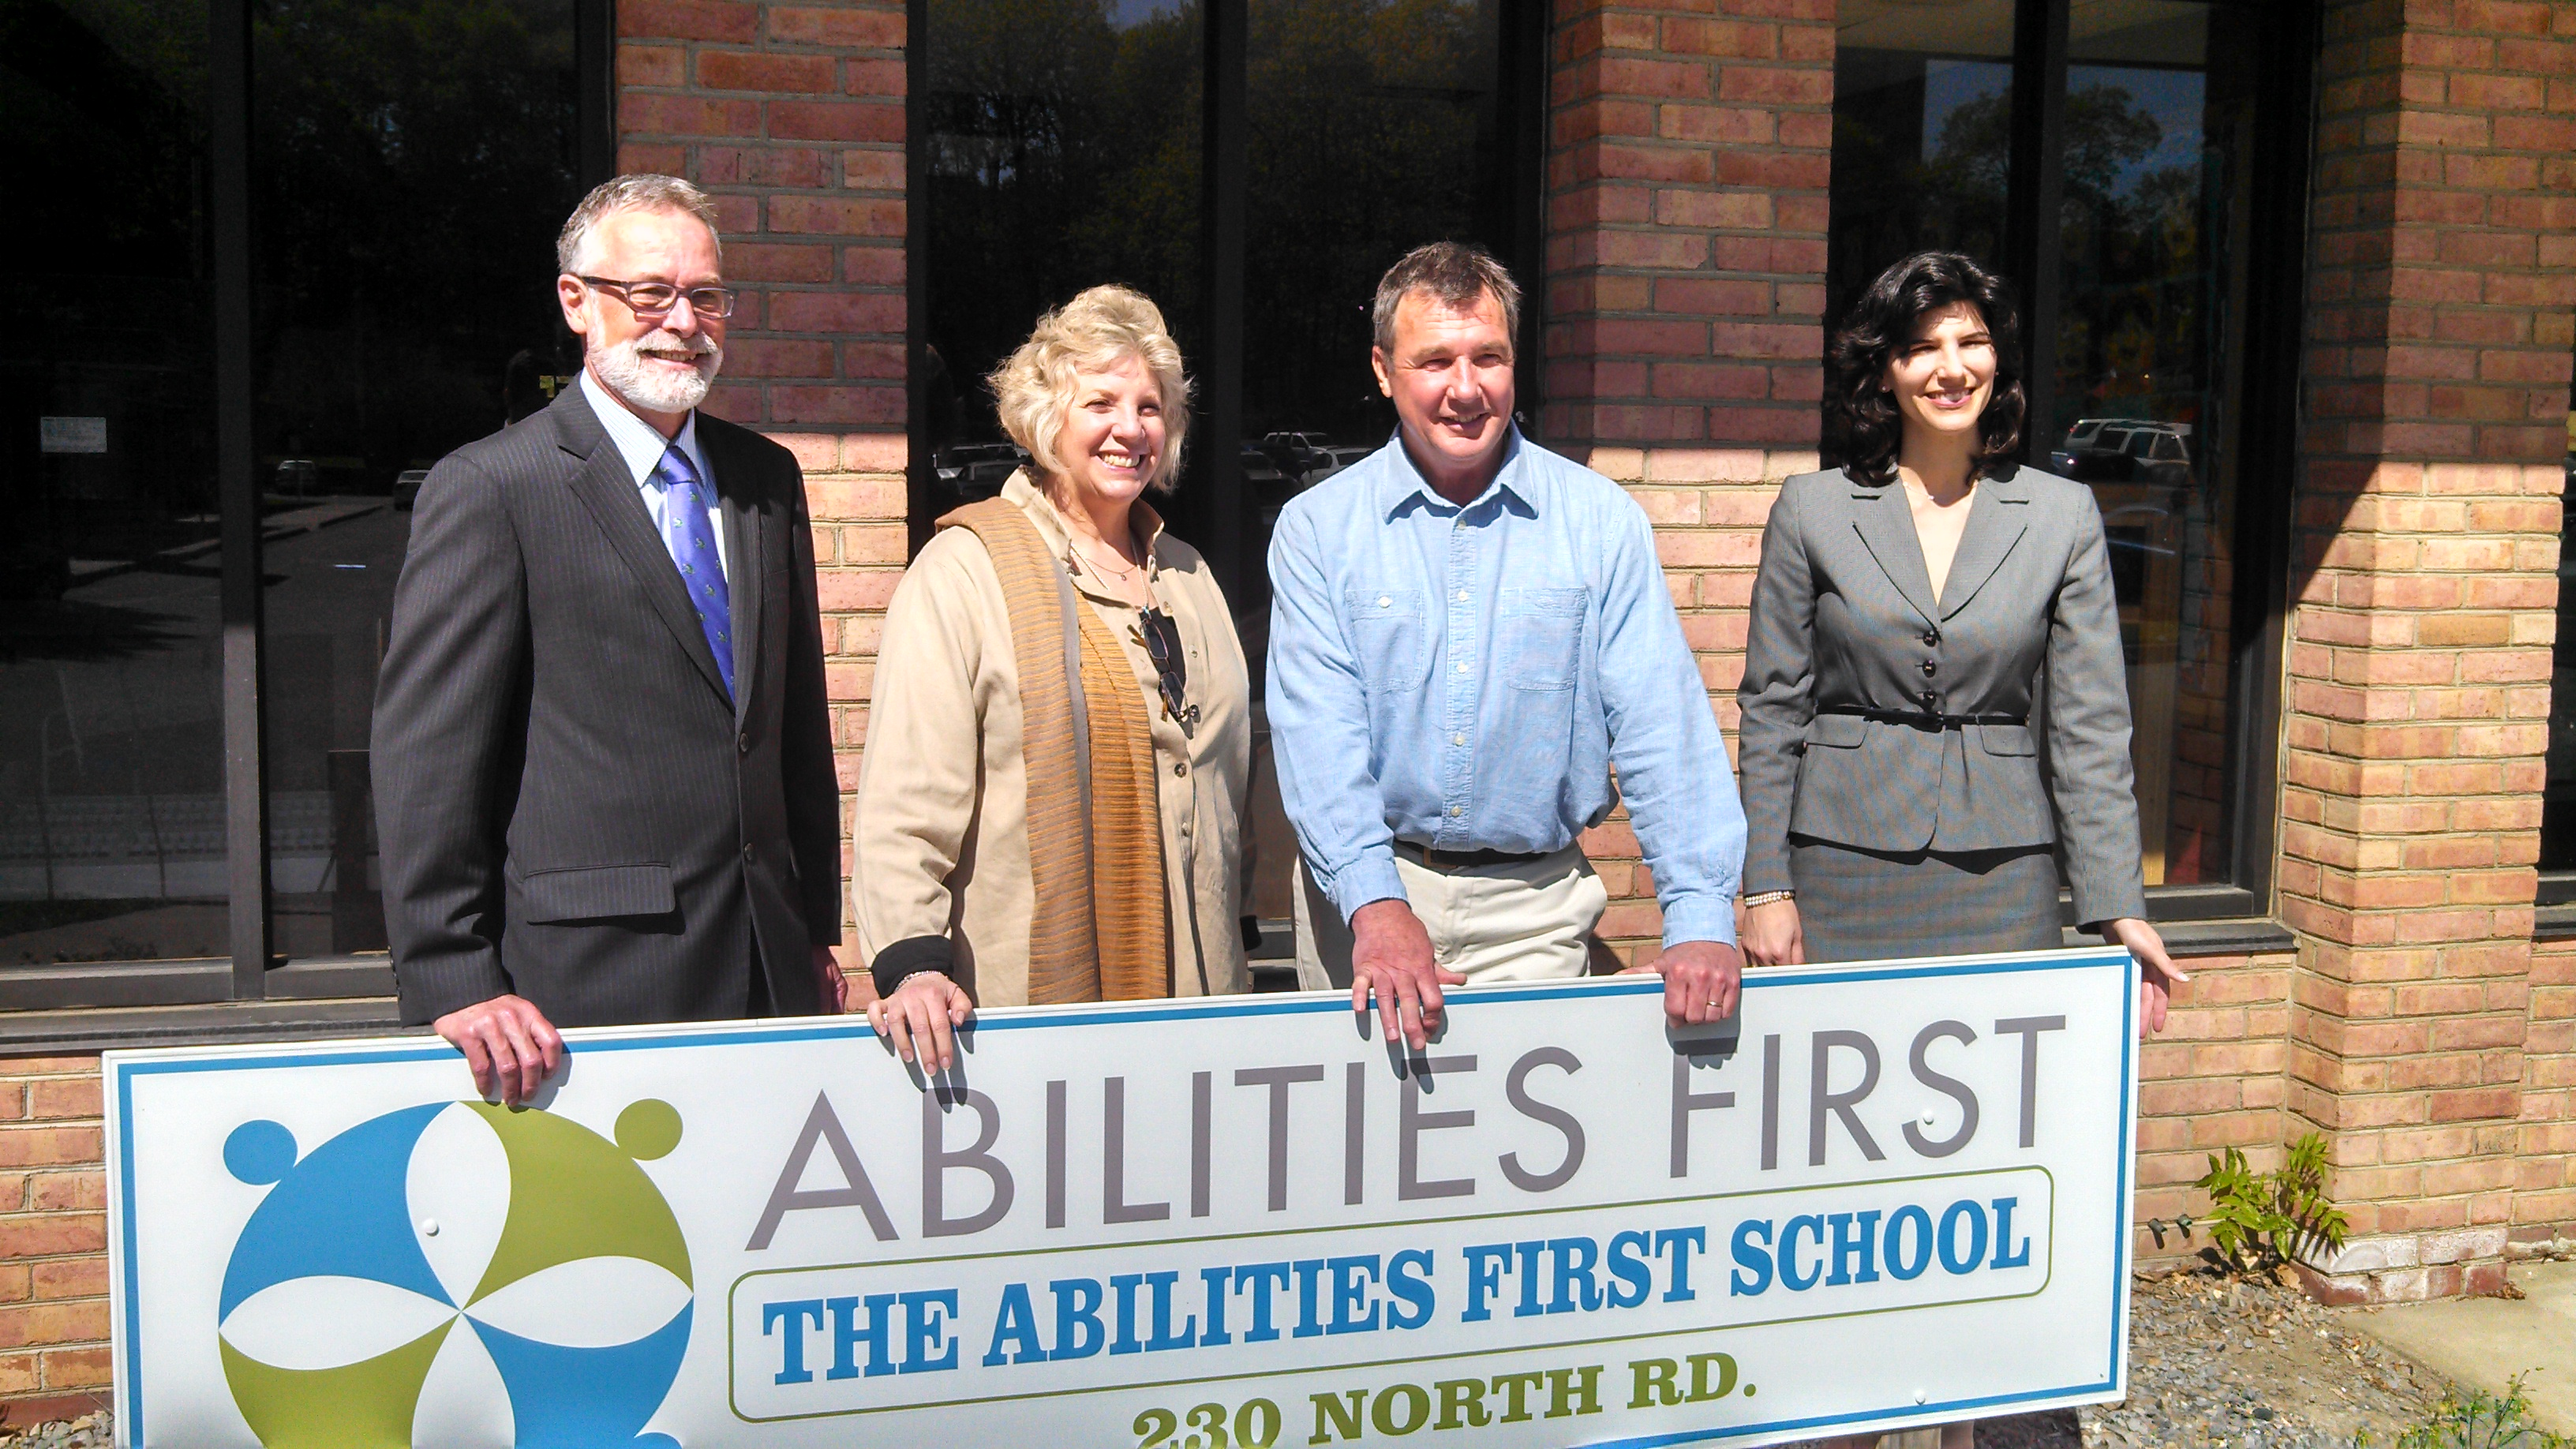 Barrett touring the Abilities First School in Poughkeepsie standing with Acting Executive Director Scott Mehlberg, School Director Bob Kelleher and Board President Jeanine Agnolet.